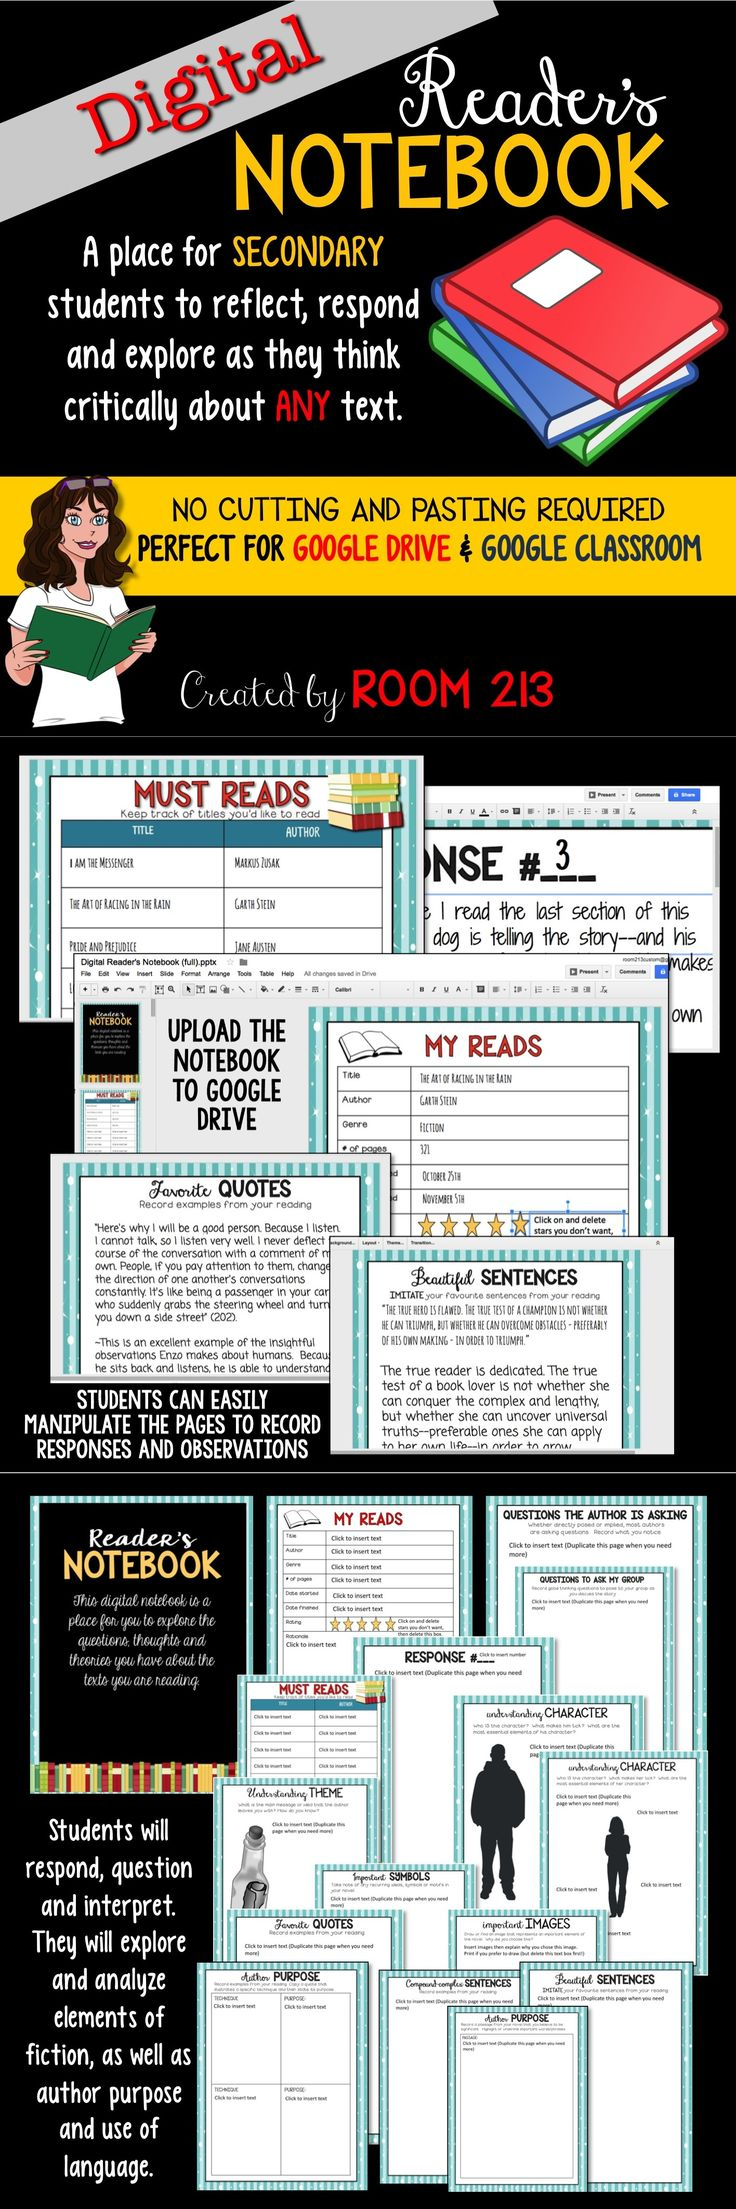 READER'S NOTEBOOK FOR GOOGLE DRIVE OR GOOLGE CLASSROOM: students will be engaged with this interactive notebook that allows them to explore and think critically about any text.